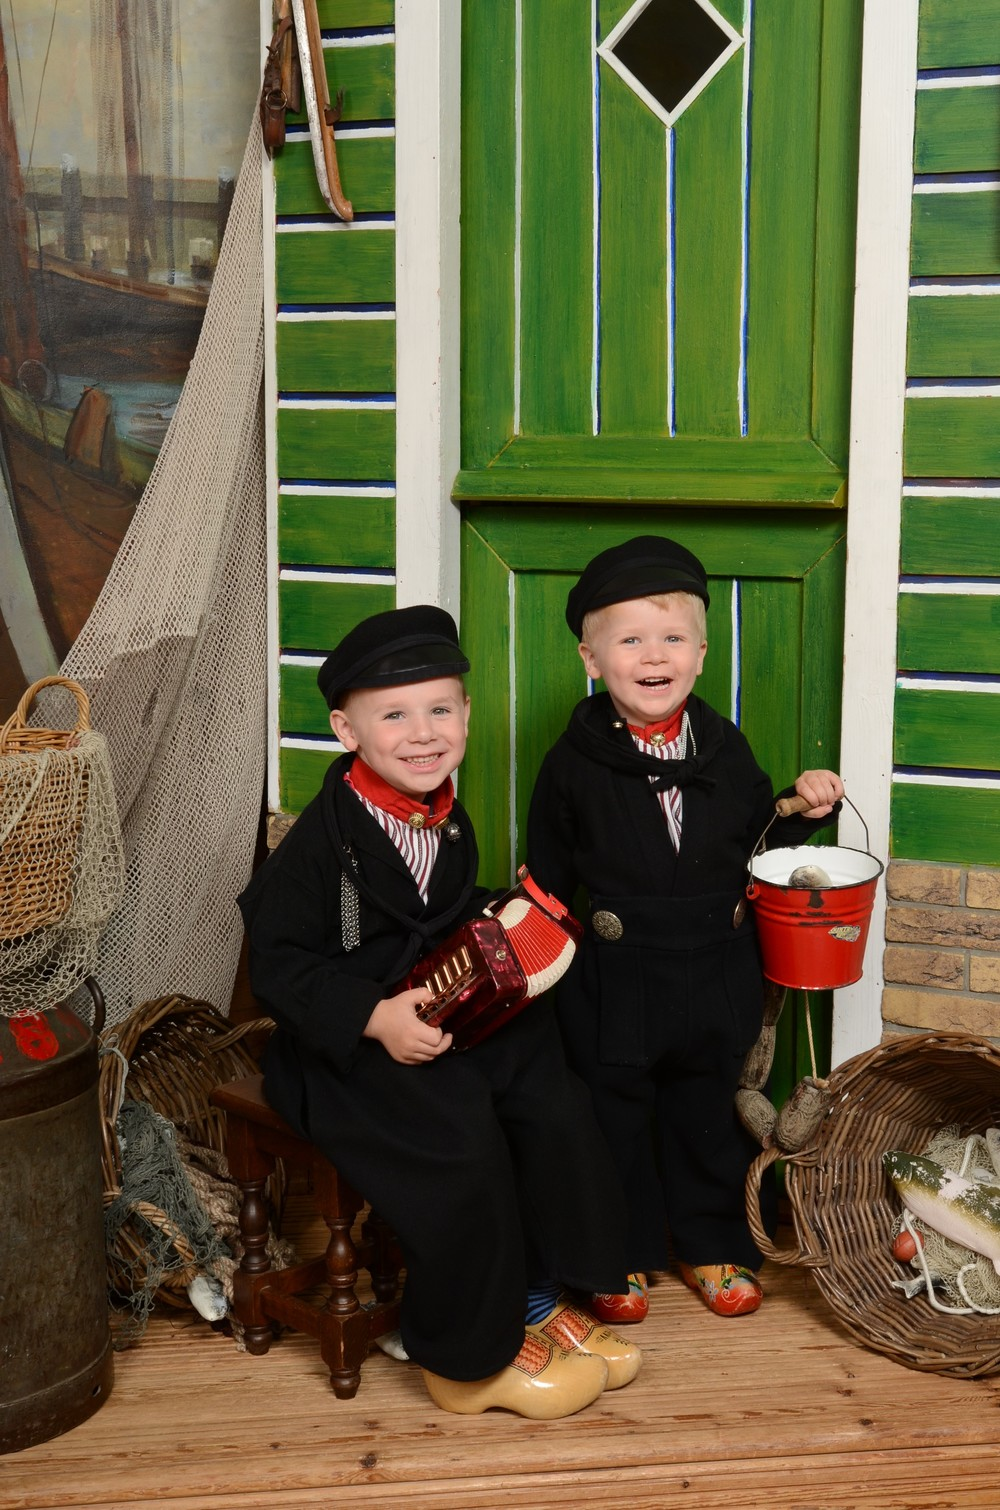 Kids in Volendam costume